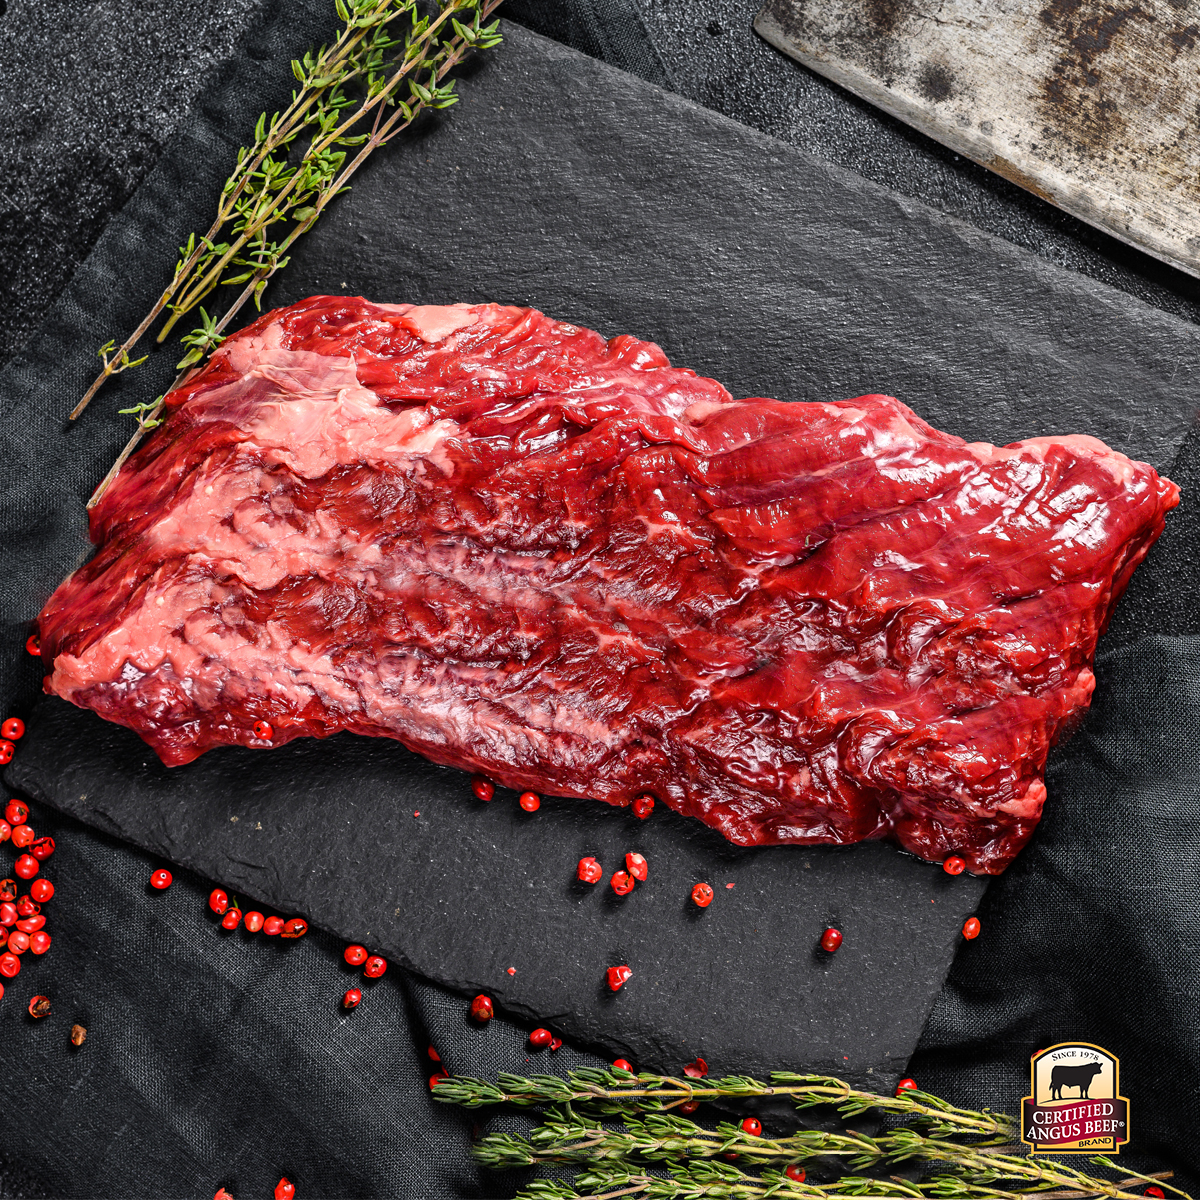 Flap Meat Certified Angus Beef®